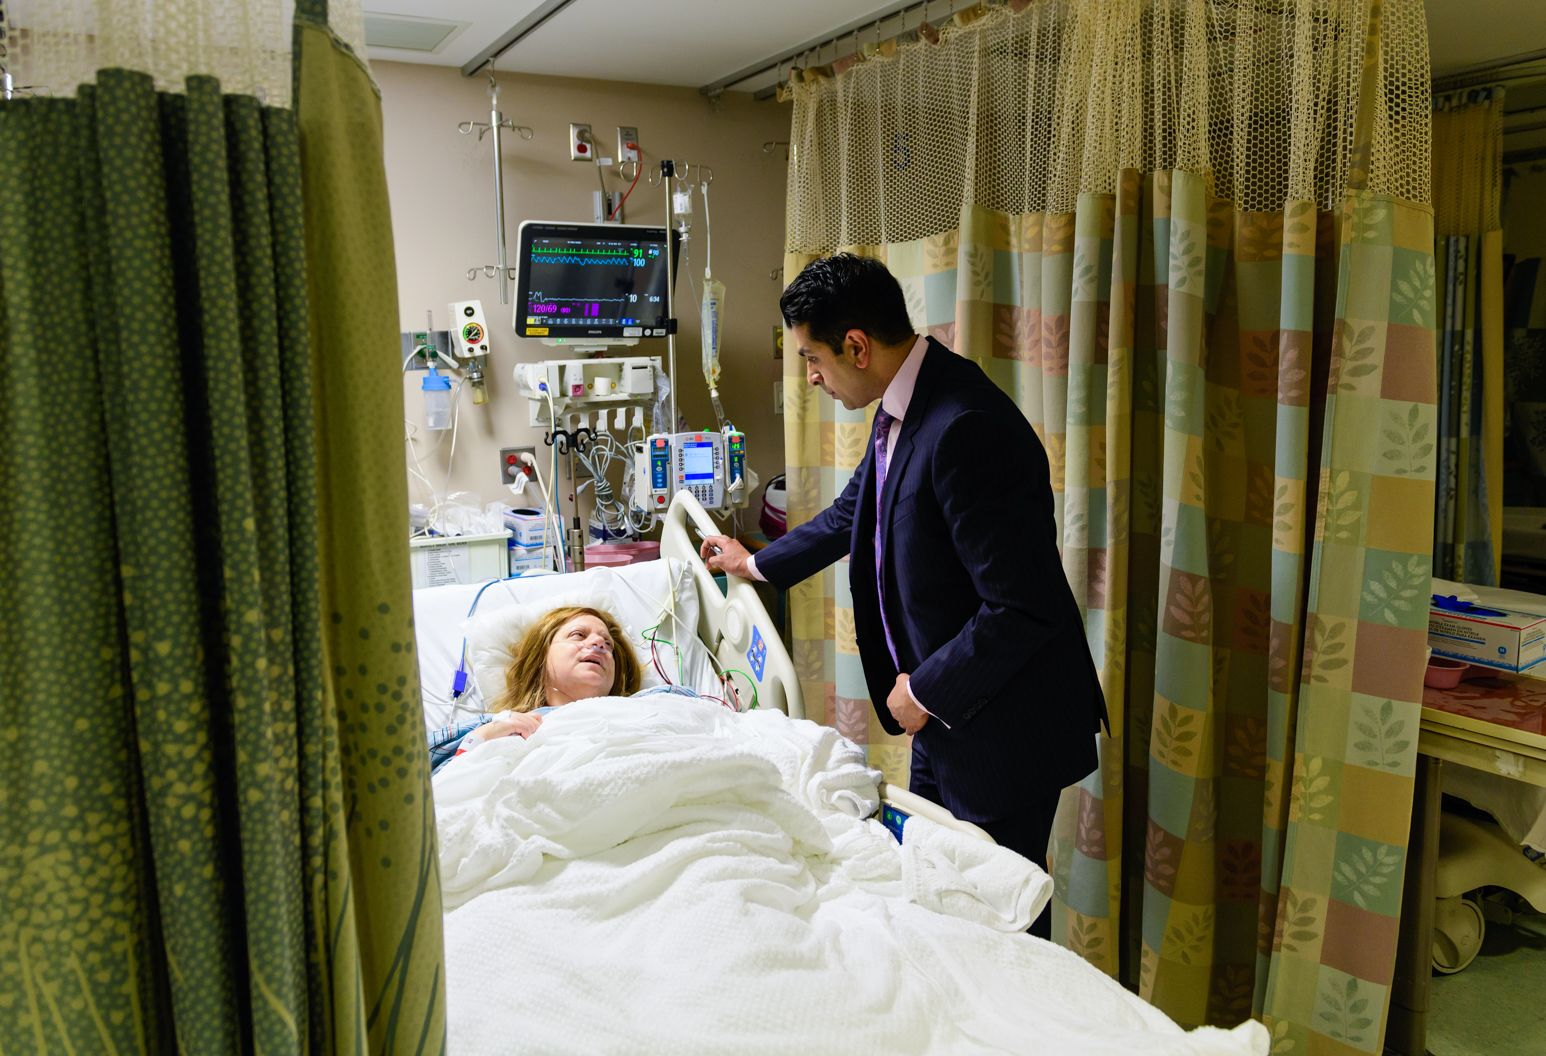 Man in blue suit stands in a hospital room looking over a woman laying in a hospital bed. She is hooked up to several different monitoring machines and appears in pain.